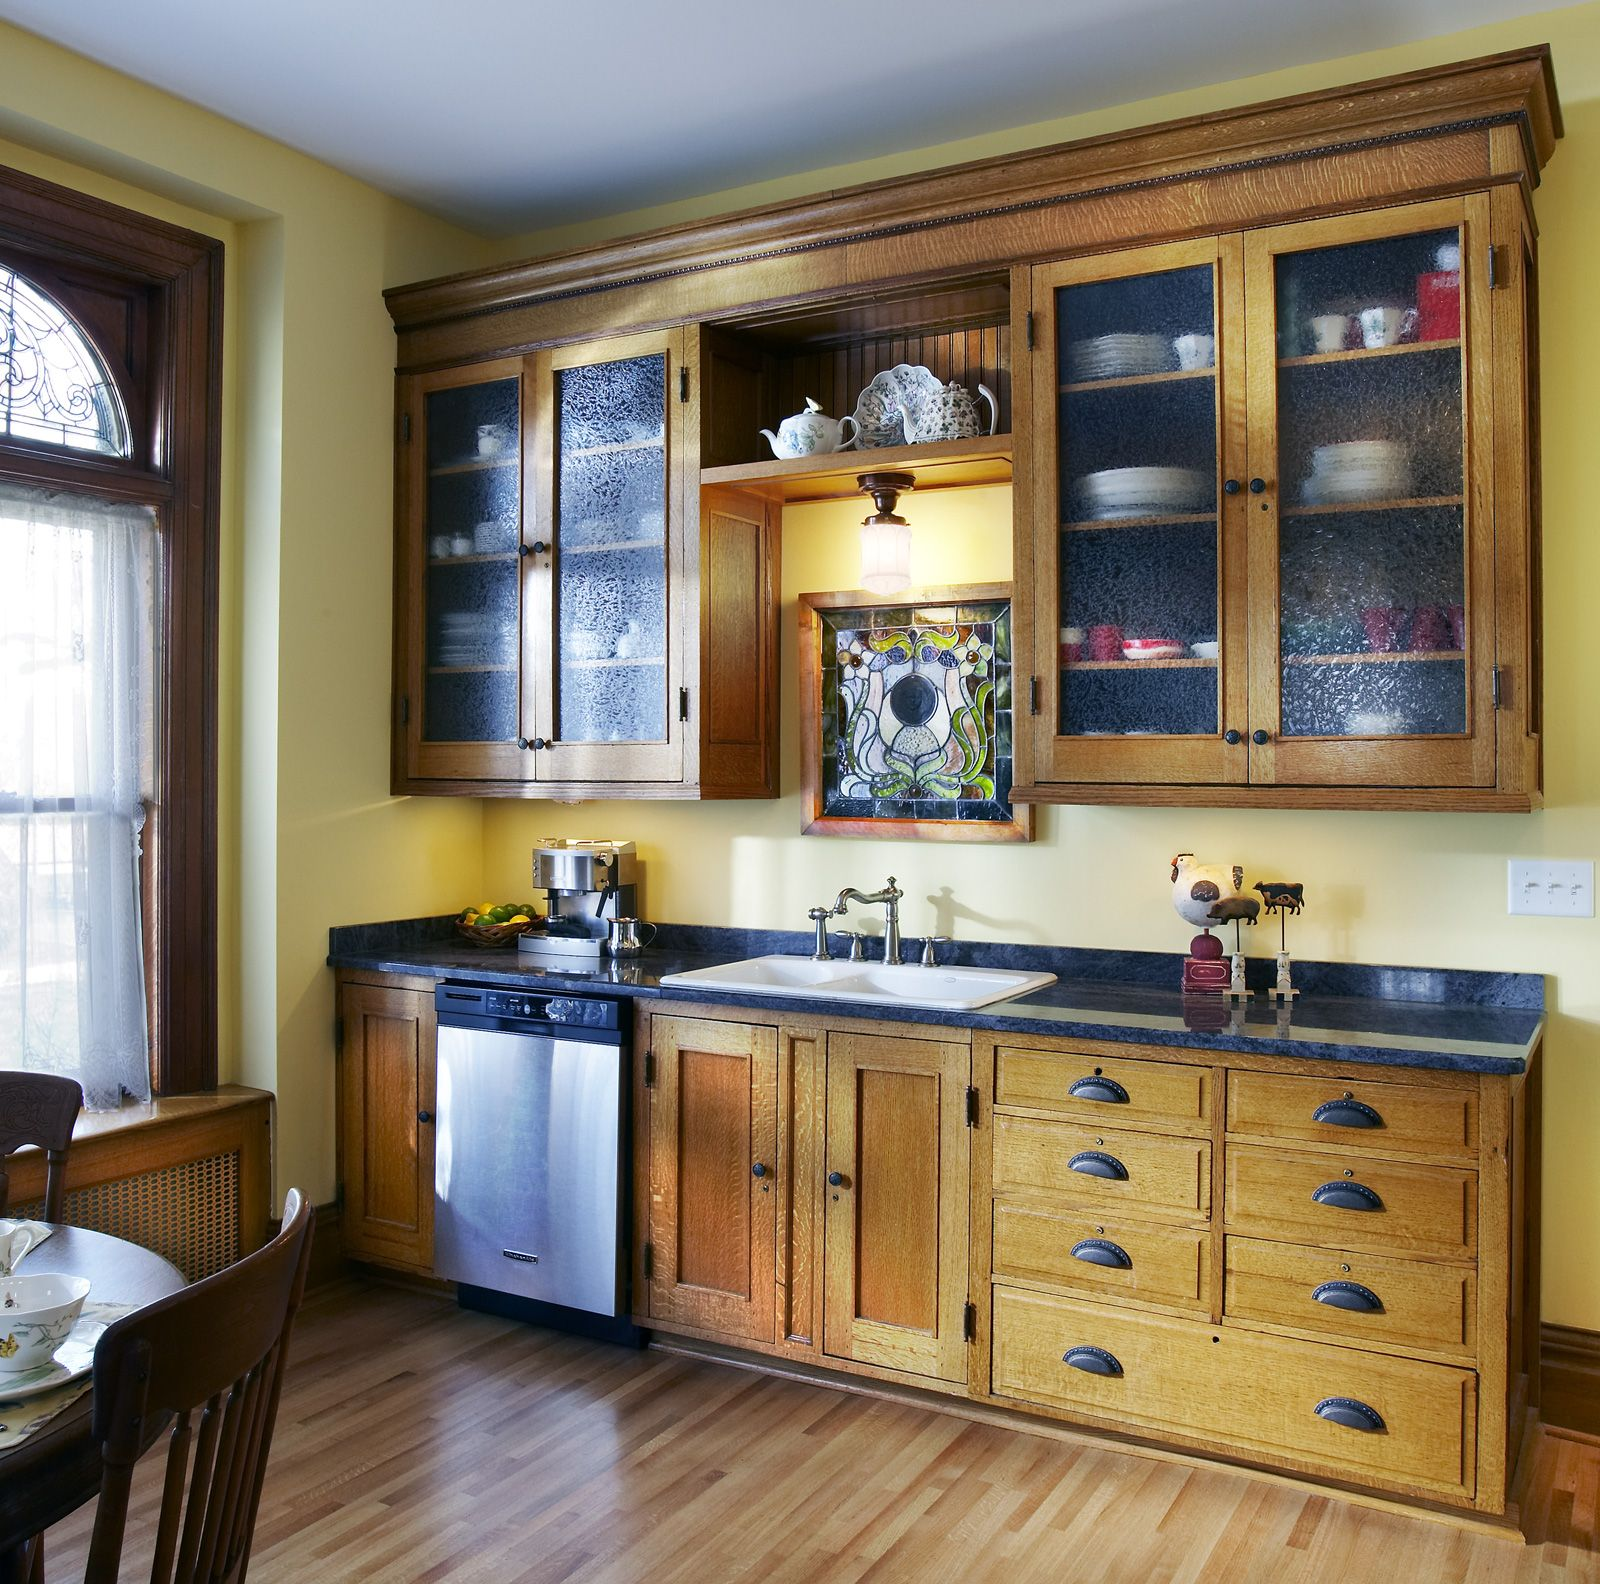 Superbe Historic Kitchen Remodel, Stillwater Minnesota